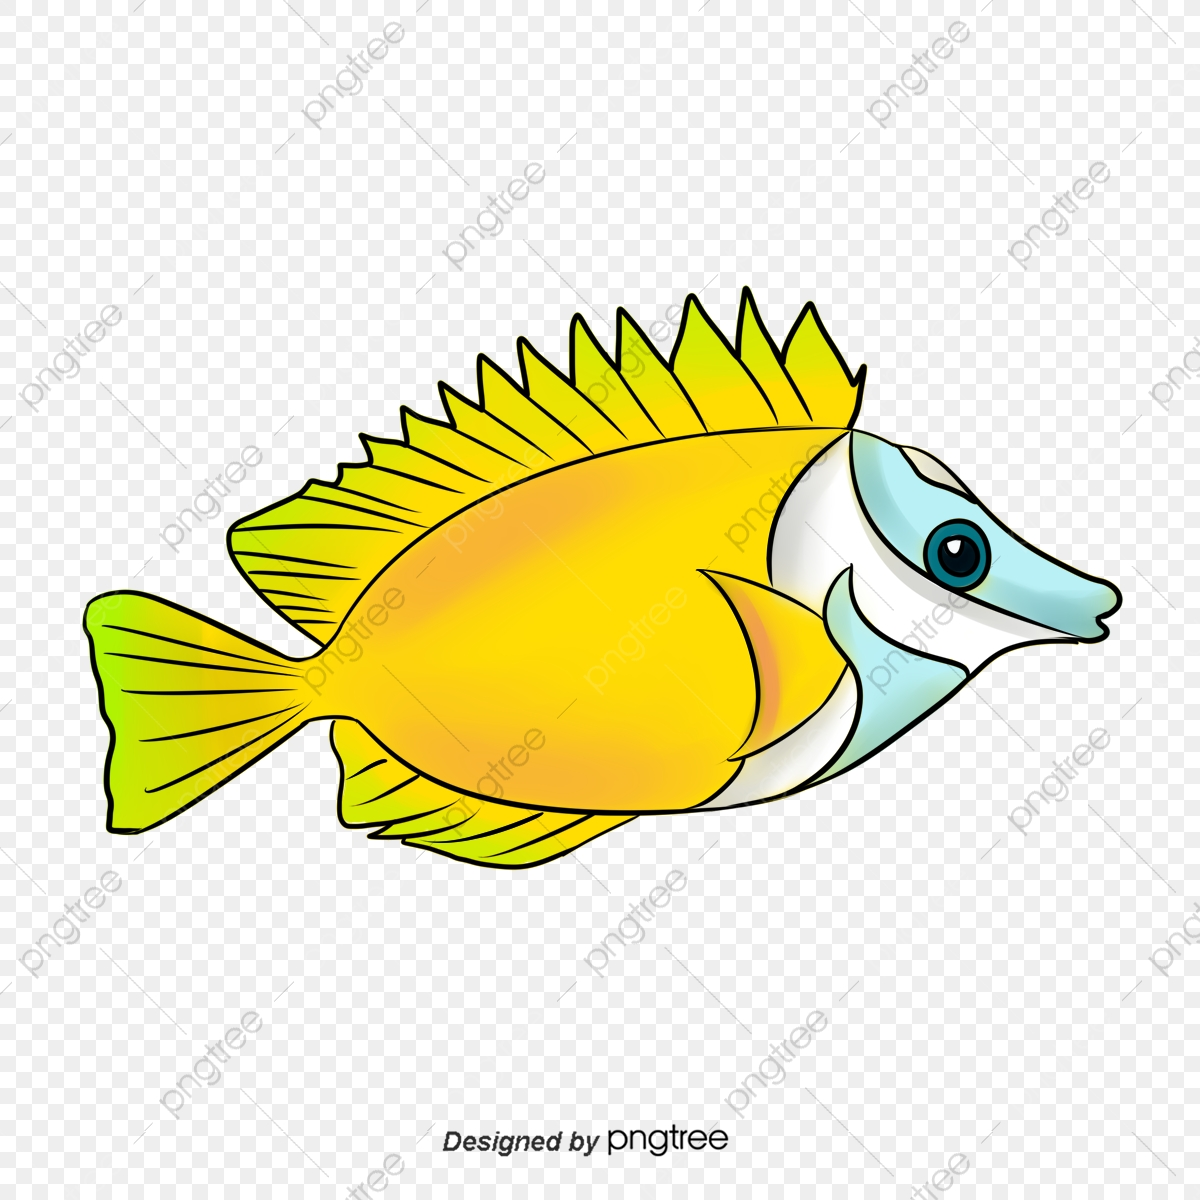 Fish Clipart Illustration Fish Clipart Png Transparent Clipart Image And Psd File For Free Download